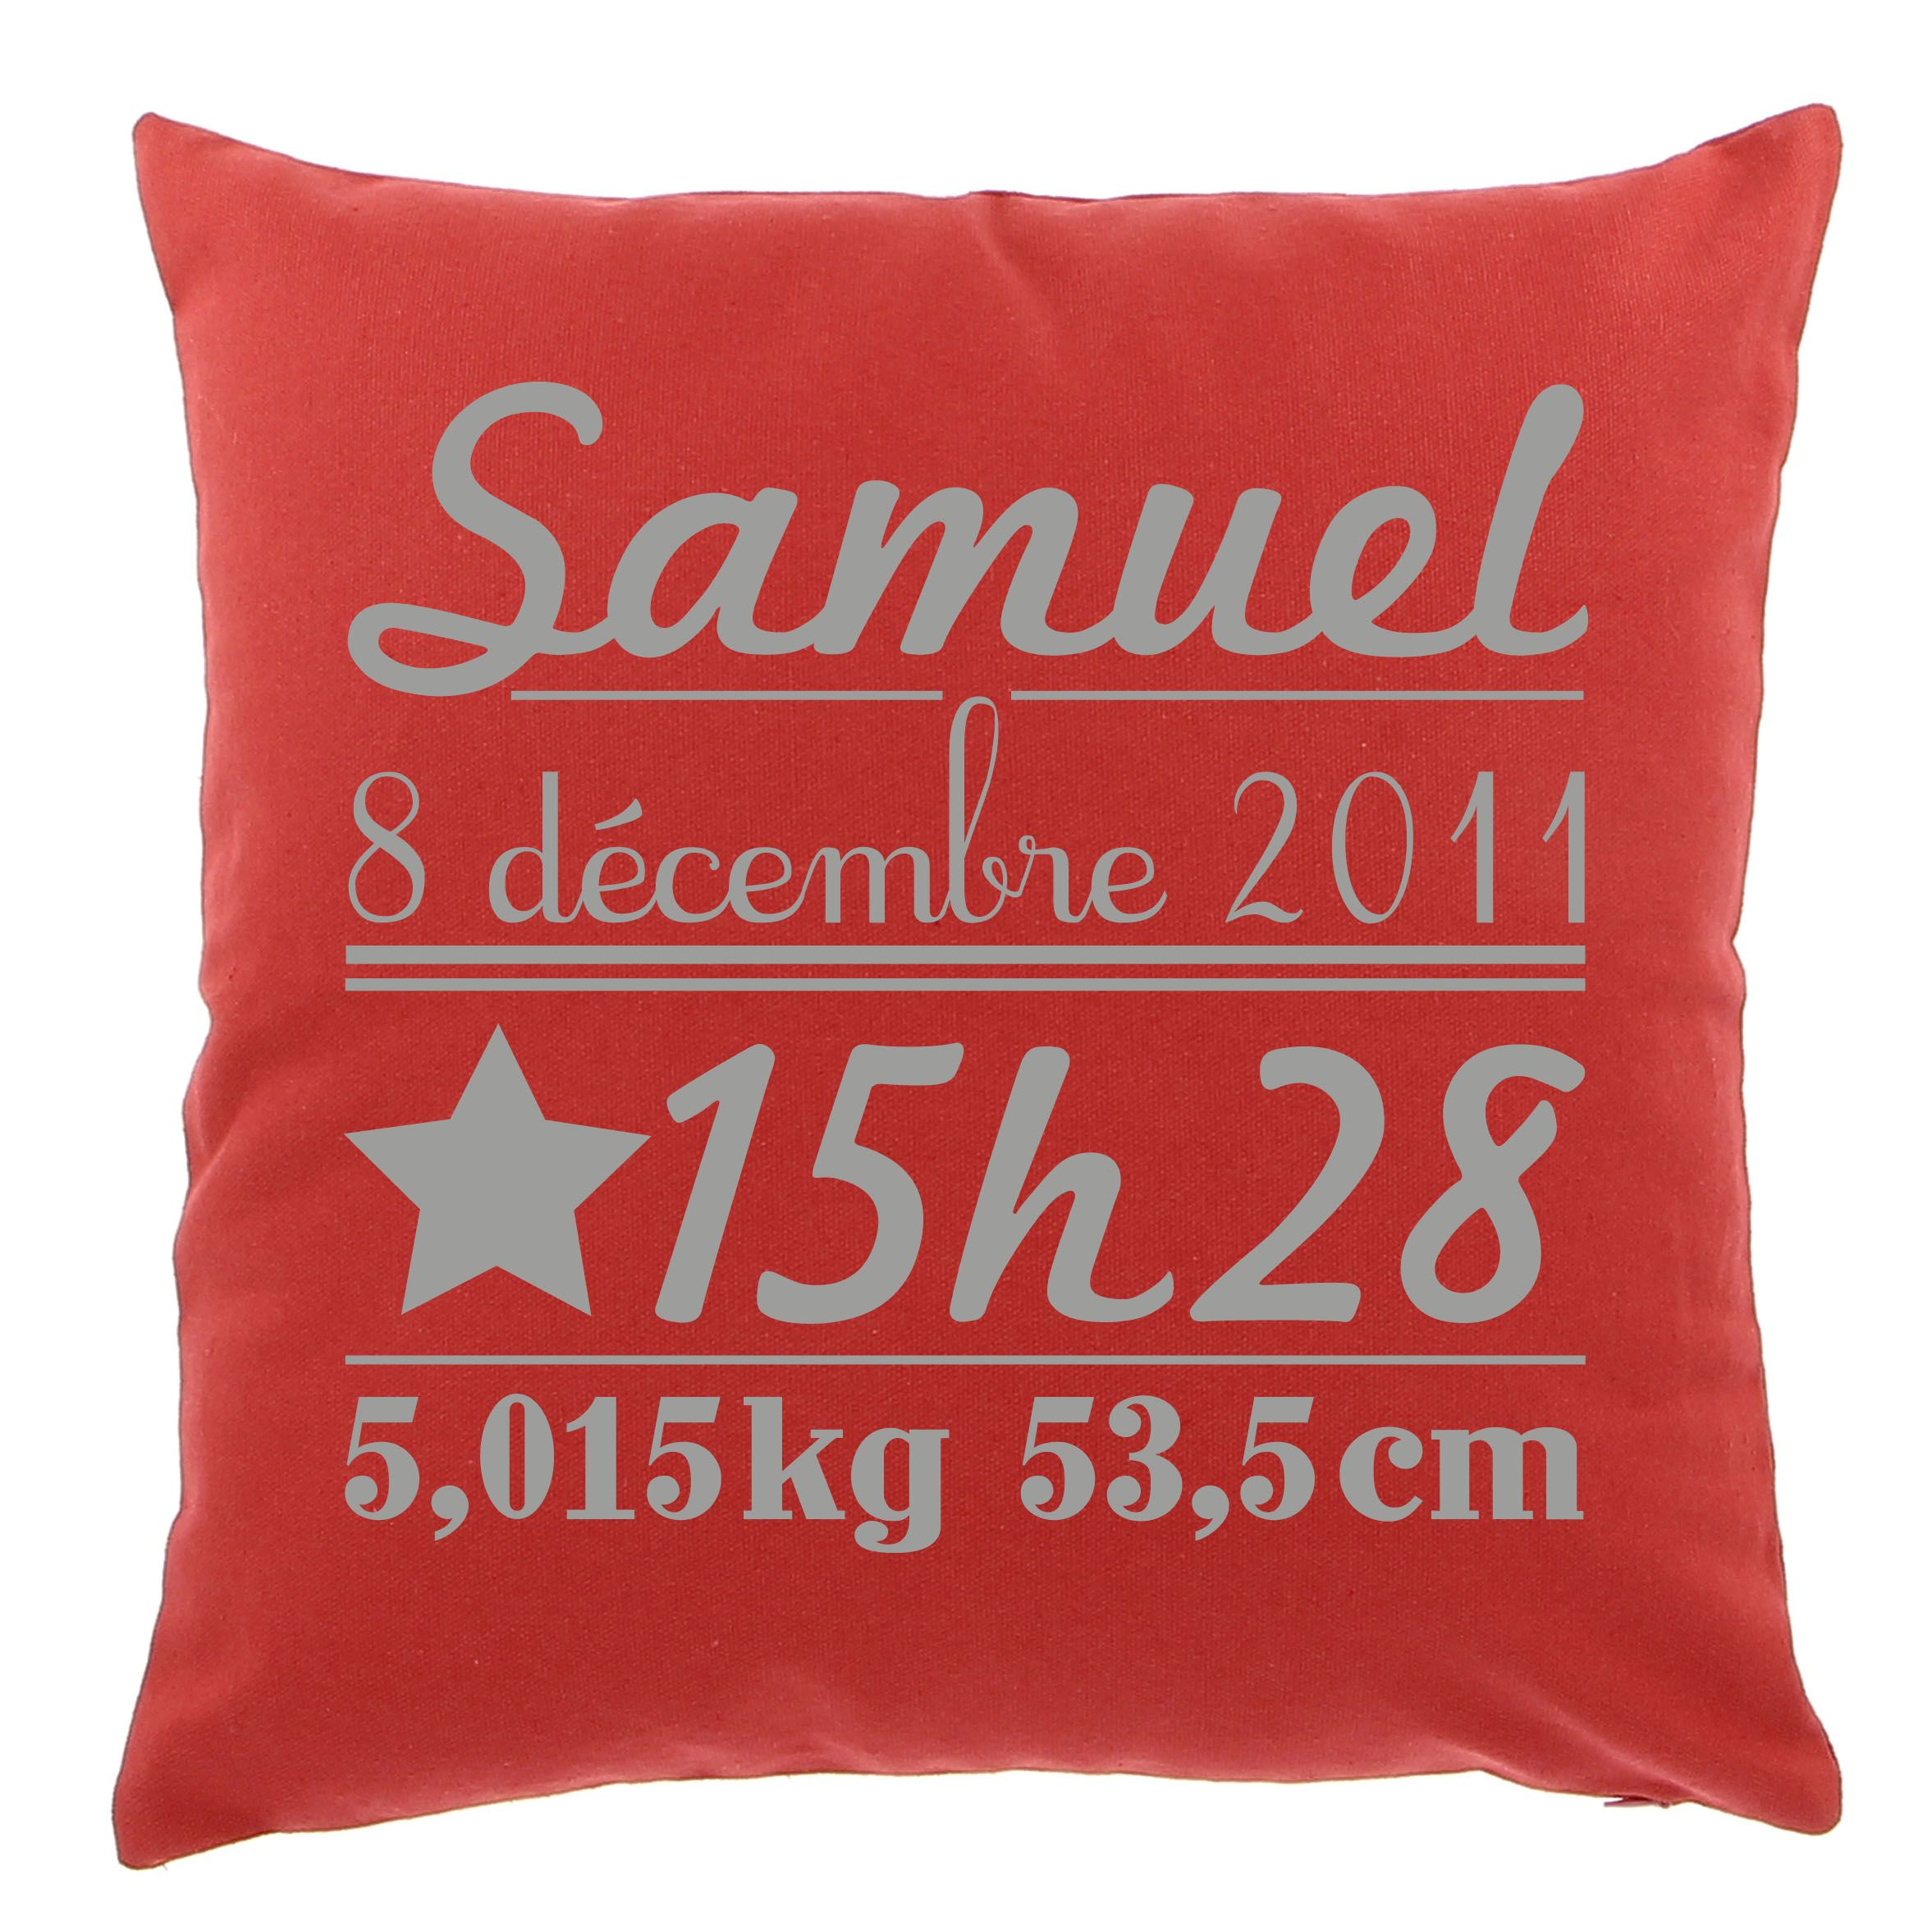 Coussin naissance Grand mod¨le by Matao Rouge personnalisation